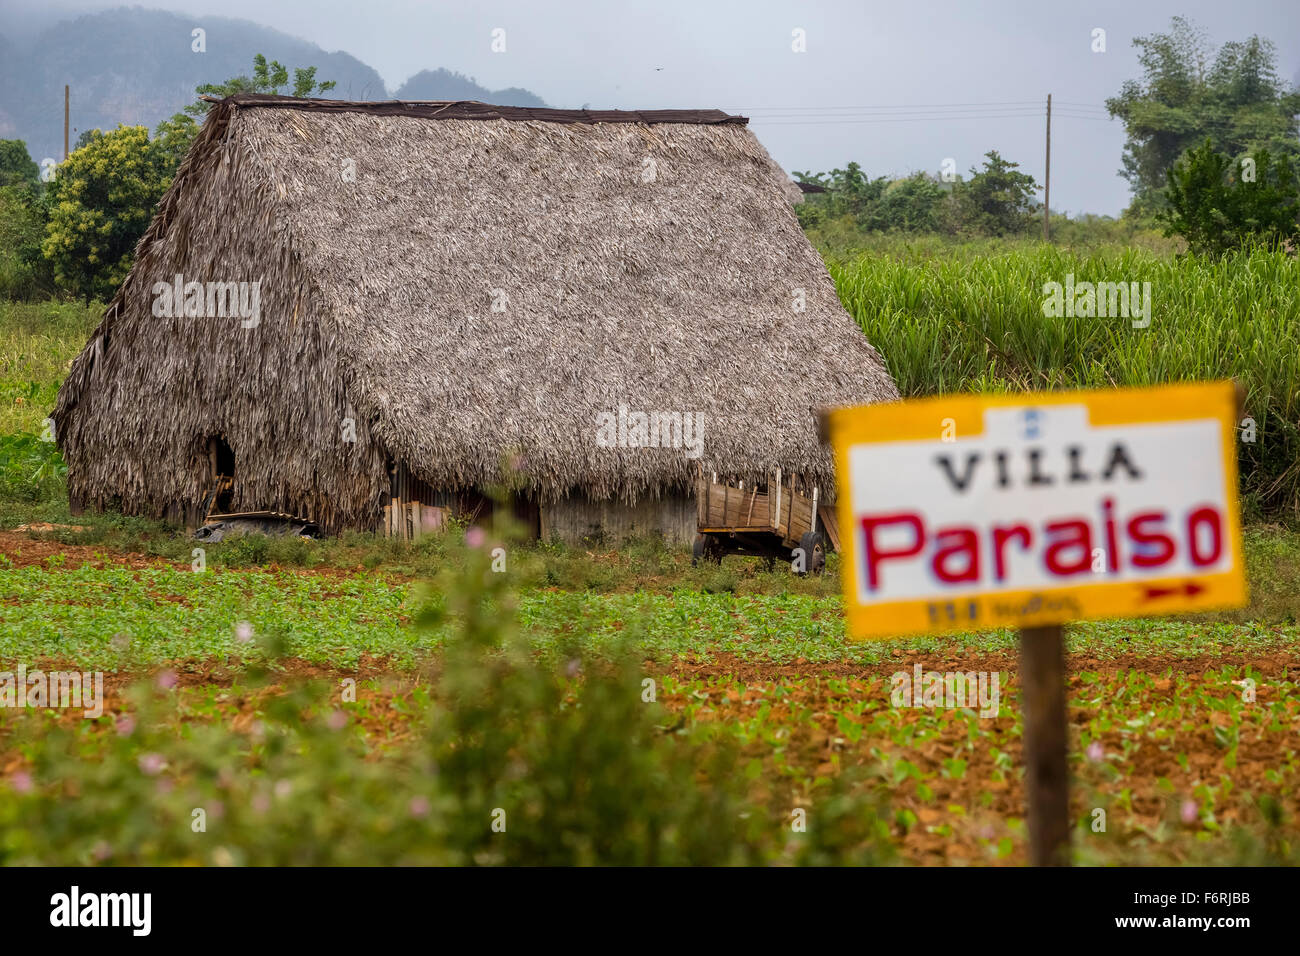 Sign to a private pension, Villa Paraiso, covered with leaves barn for drying tobacco leaves, Viñales, Cuba - Stock Image